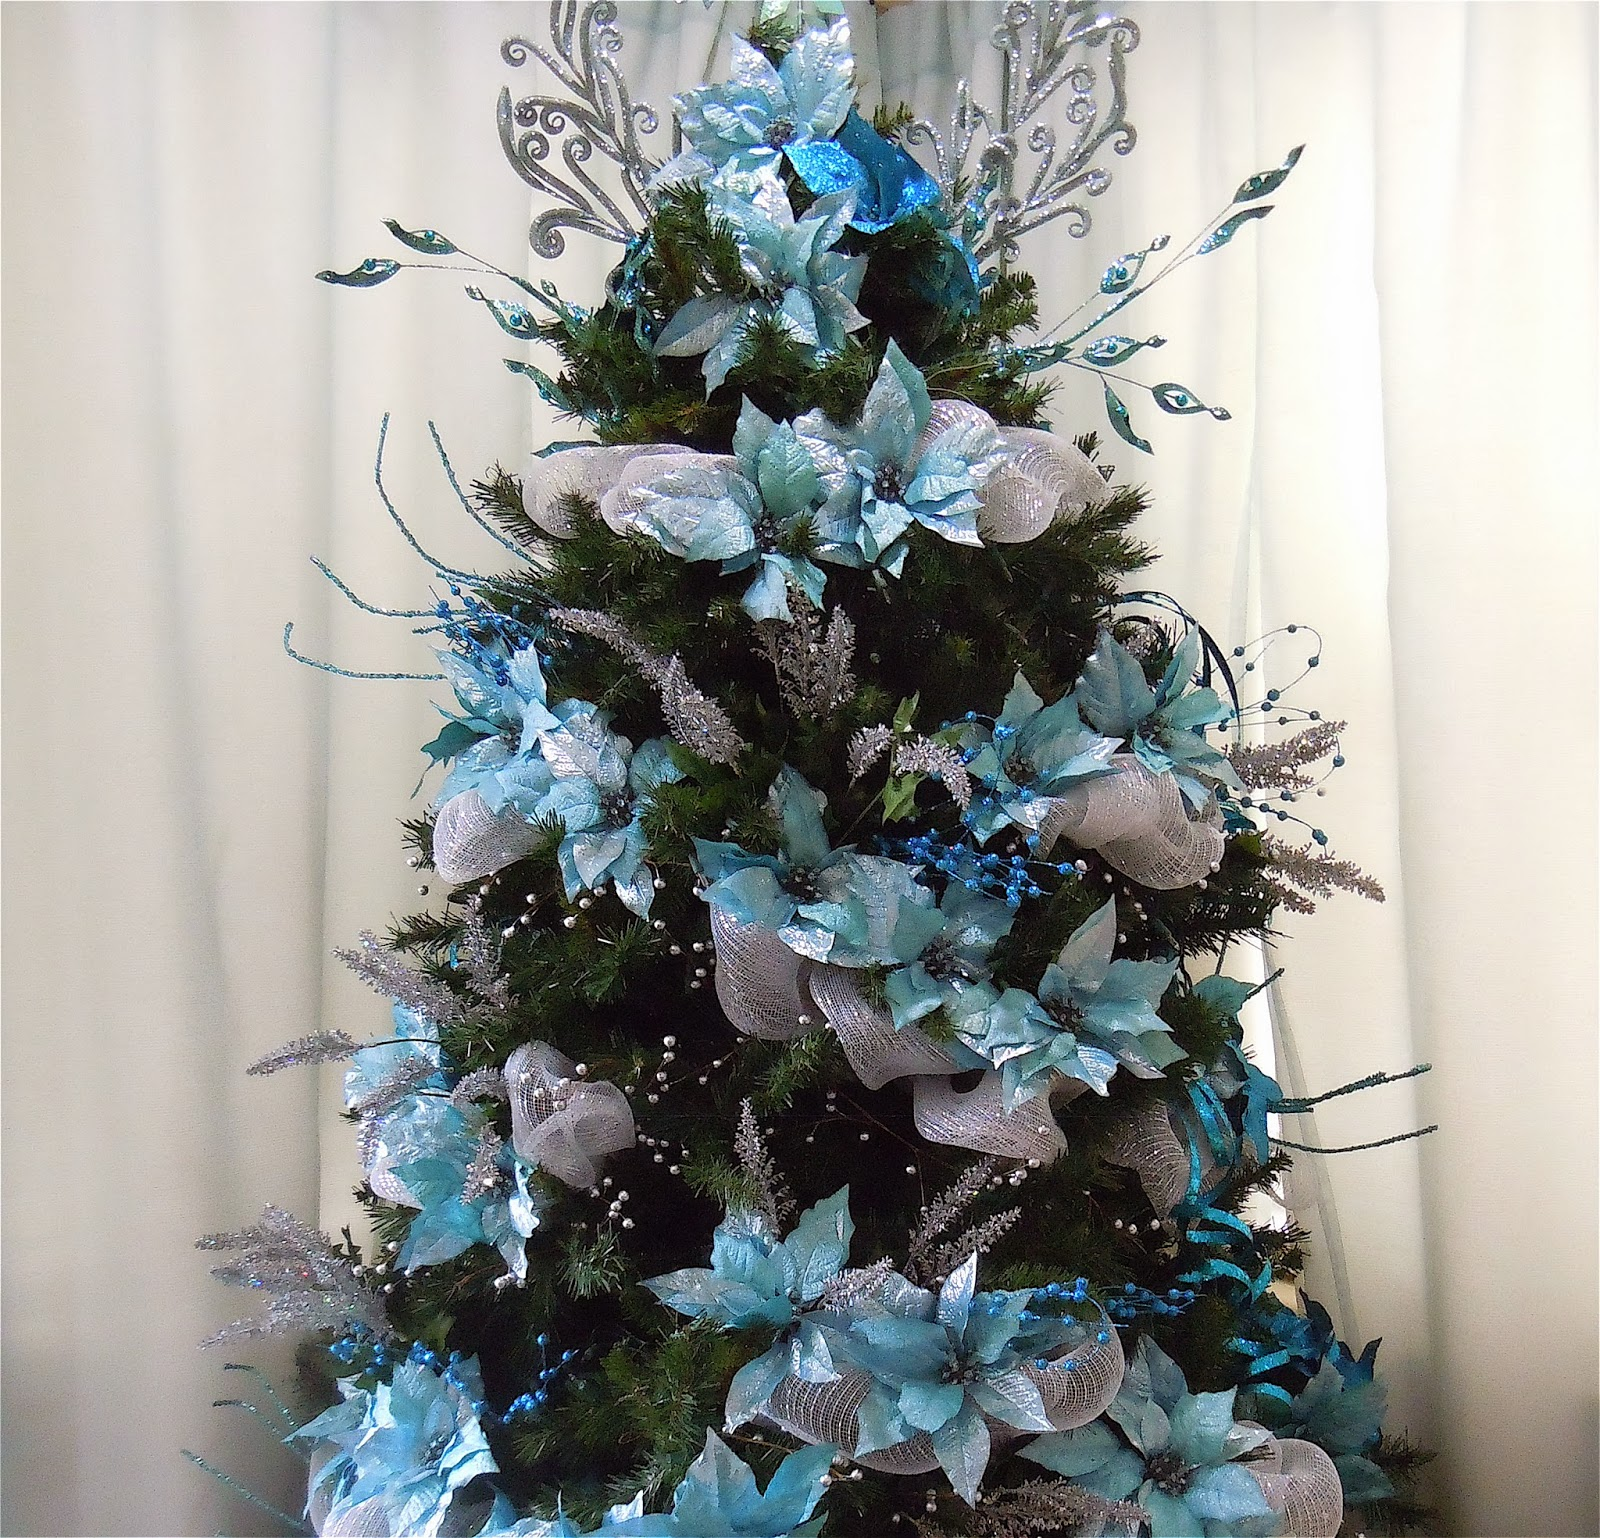 still in the initial stages of decorating just with turquoise poinsettias silver and blue picks no ornaments yet and it looks full already